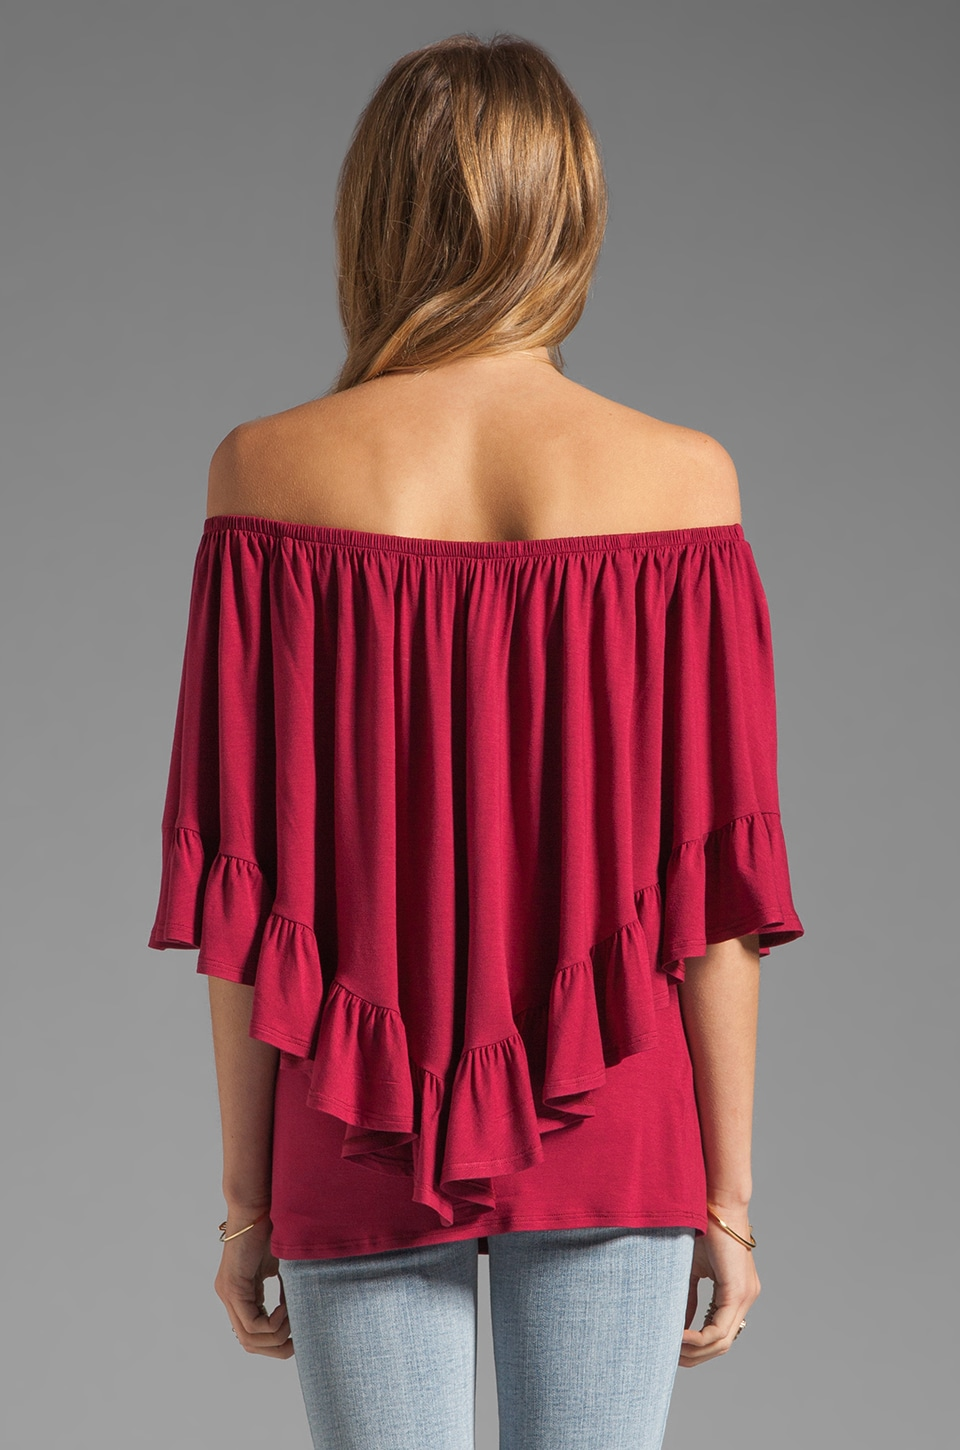 James & Joy Haley Convertible Top in Berry